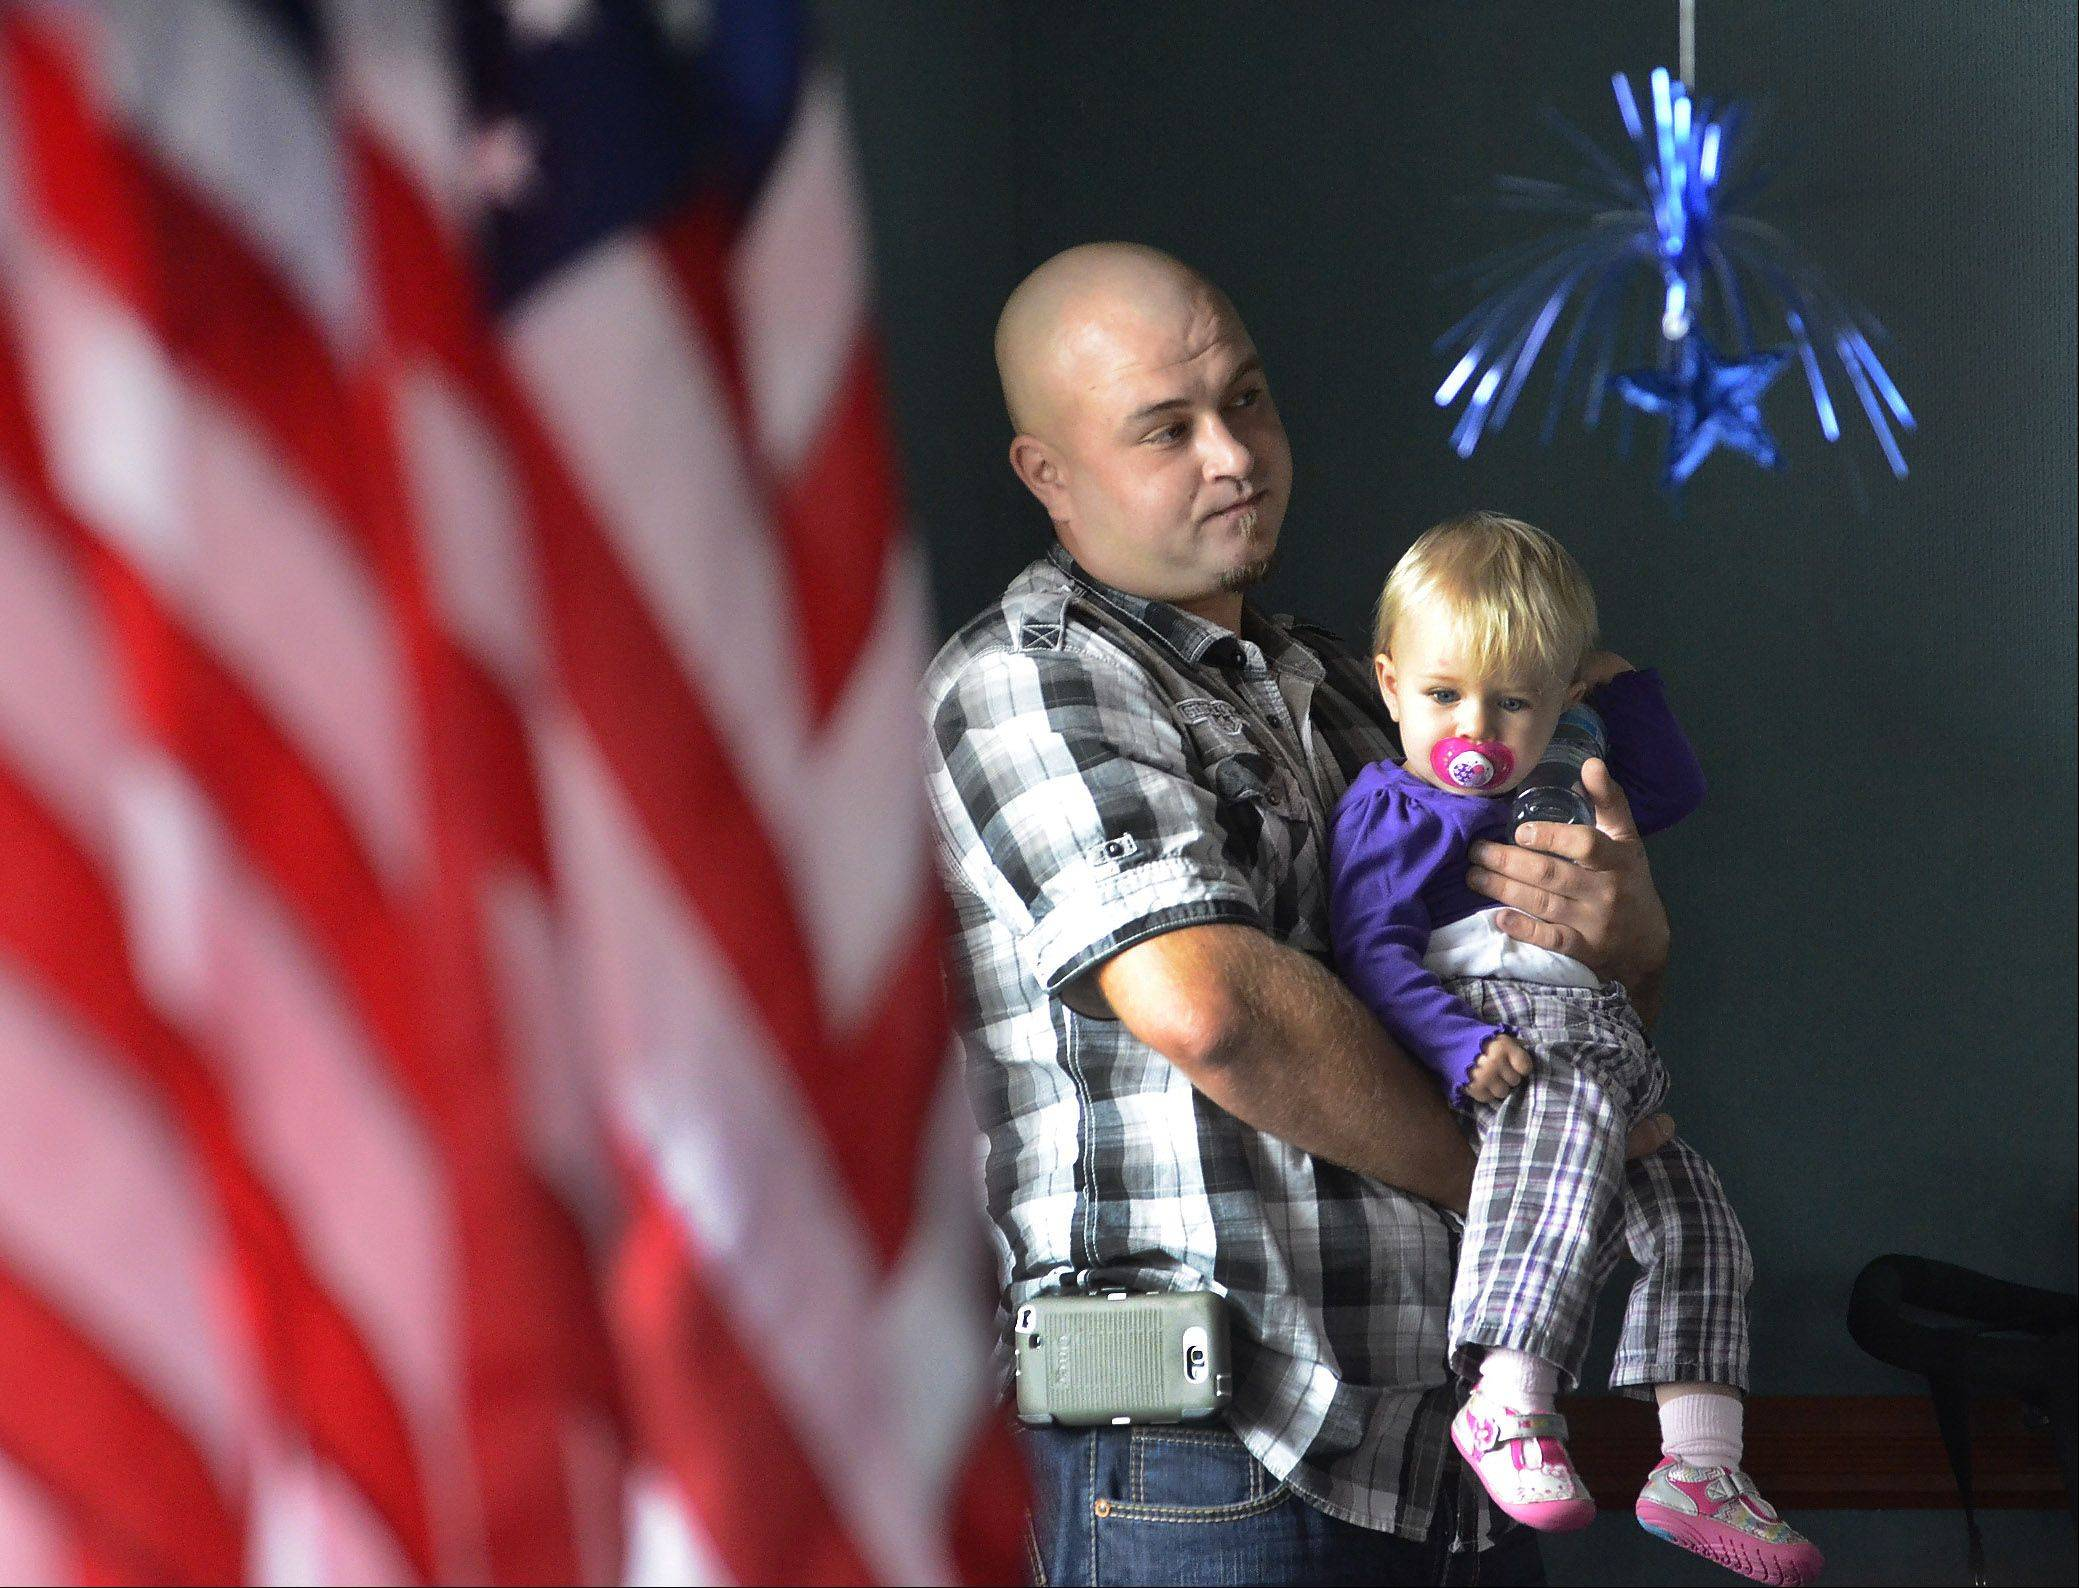 Pawel Gogola, of Algonquin, holds his daughter Natalie while watching his wife Wioletta, of Poland, receive her citizenship during a special naturalization ceremony at the Schaumburg Township District Library, when over 70 individuals received their citizenship.